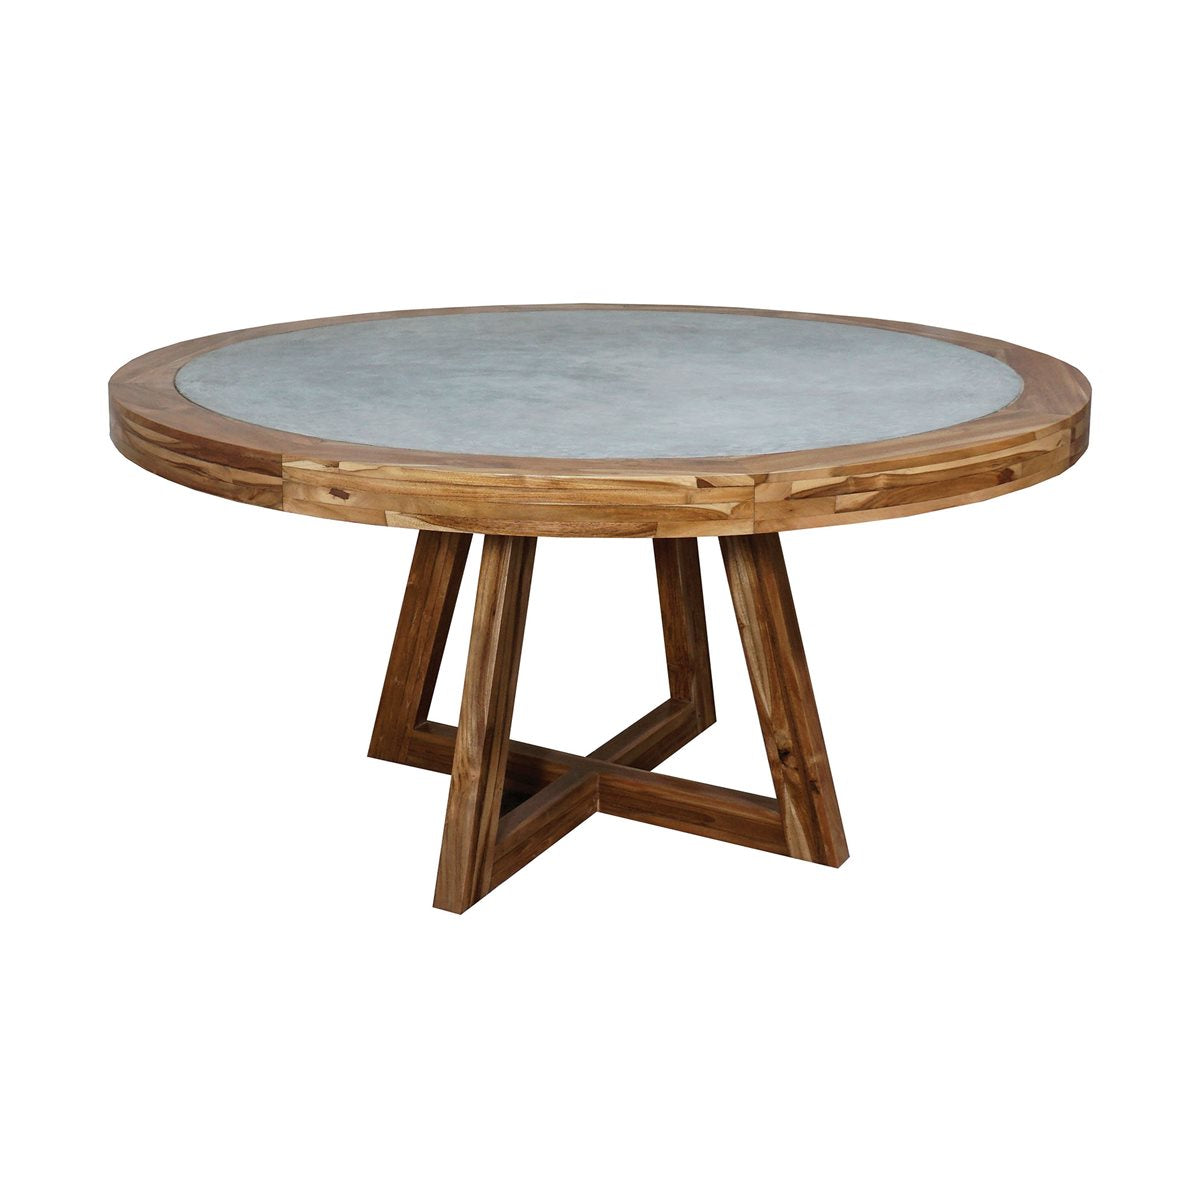 "Dracho 60"" Round Dining Table - Concrete with Teak Wood Base"